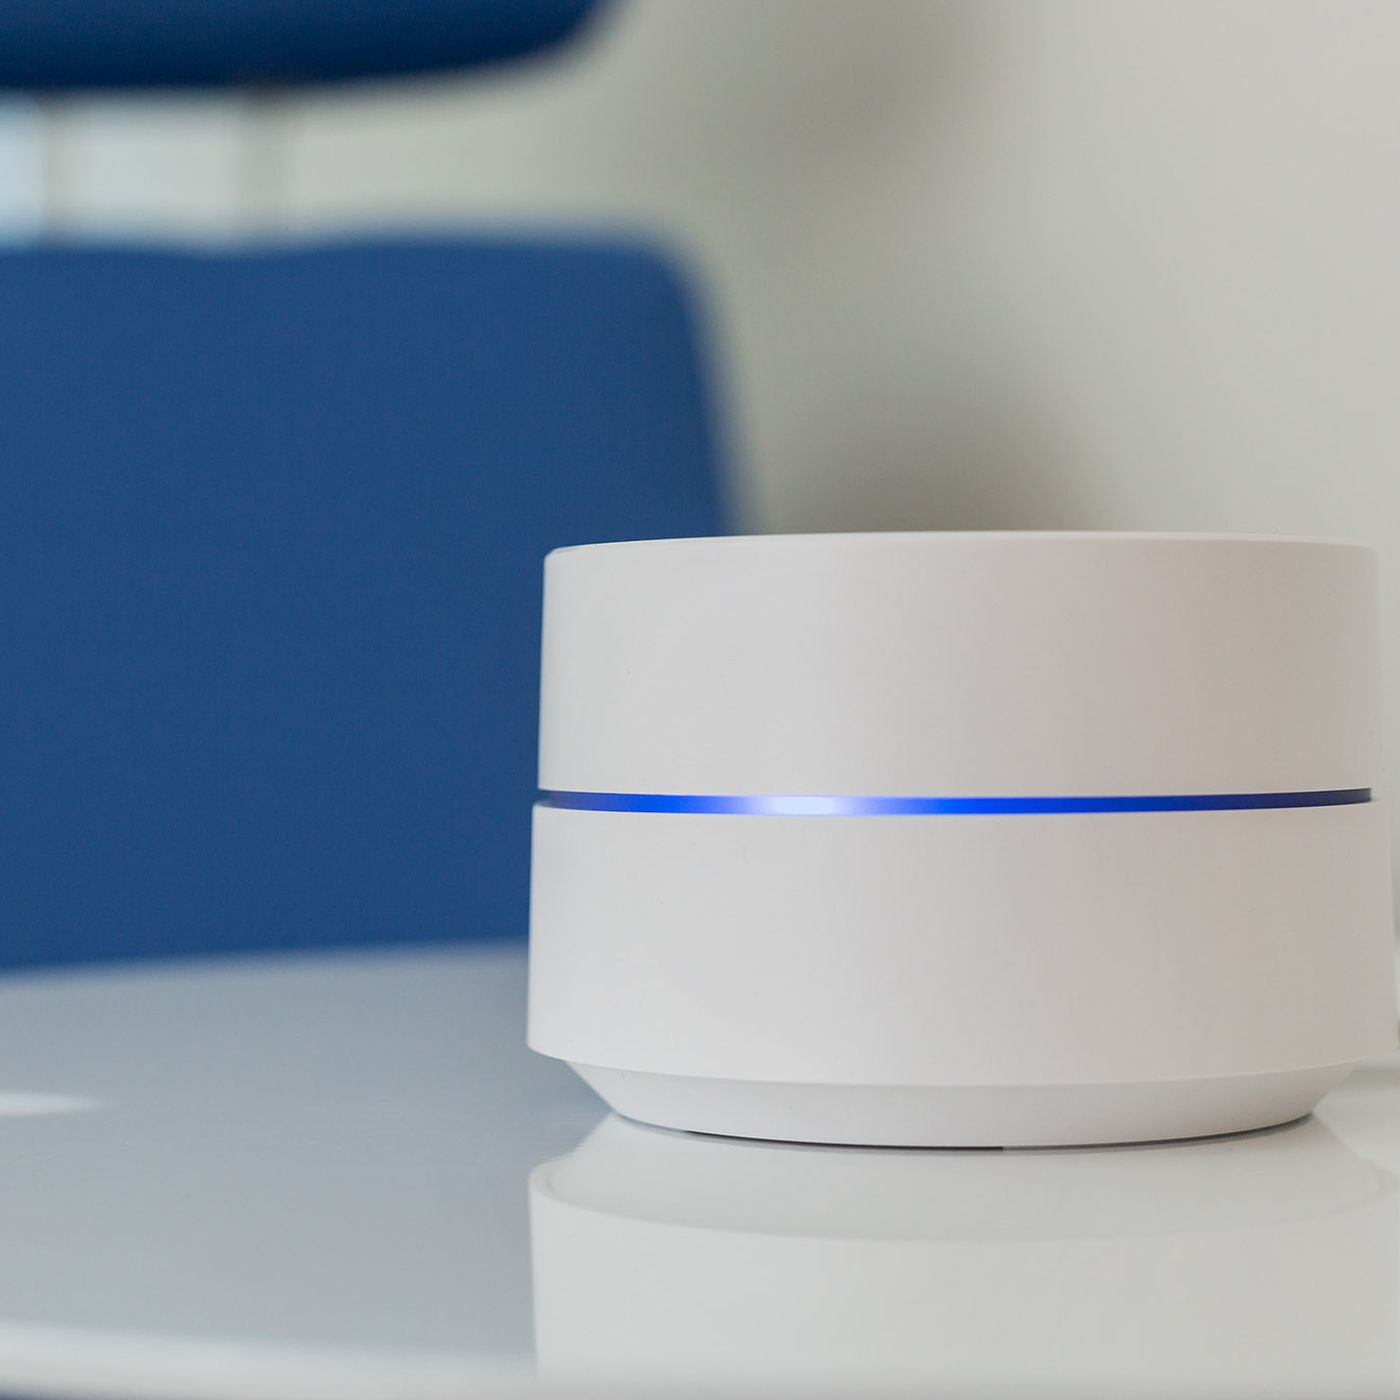 Google is having more problems with its relatively new Wi-Fi